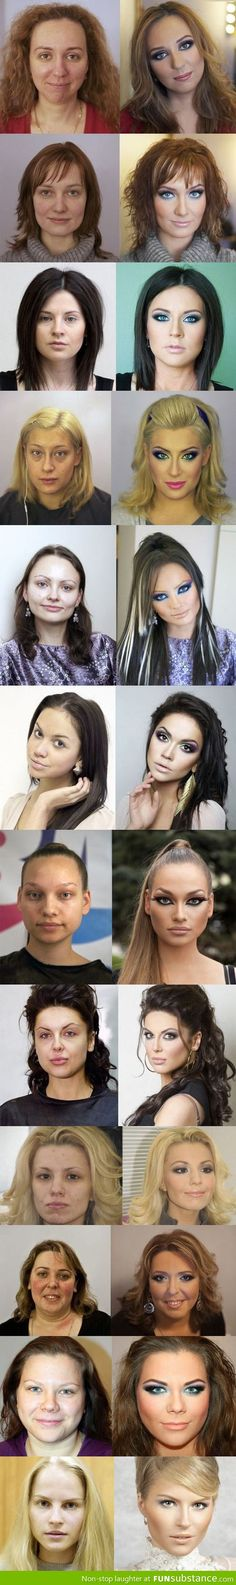 Power of Russian Makeup: Before and After